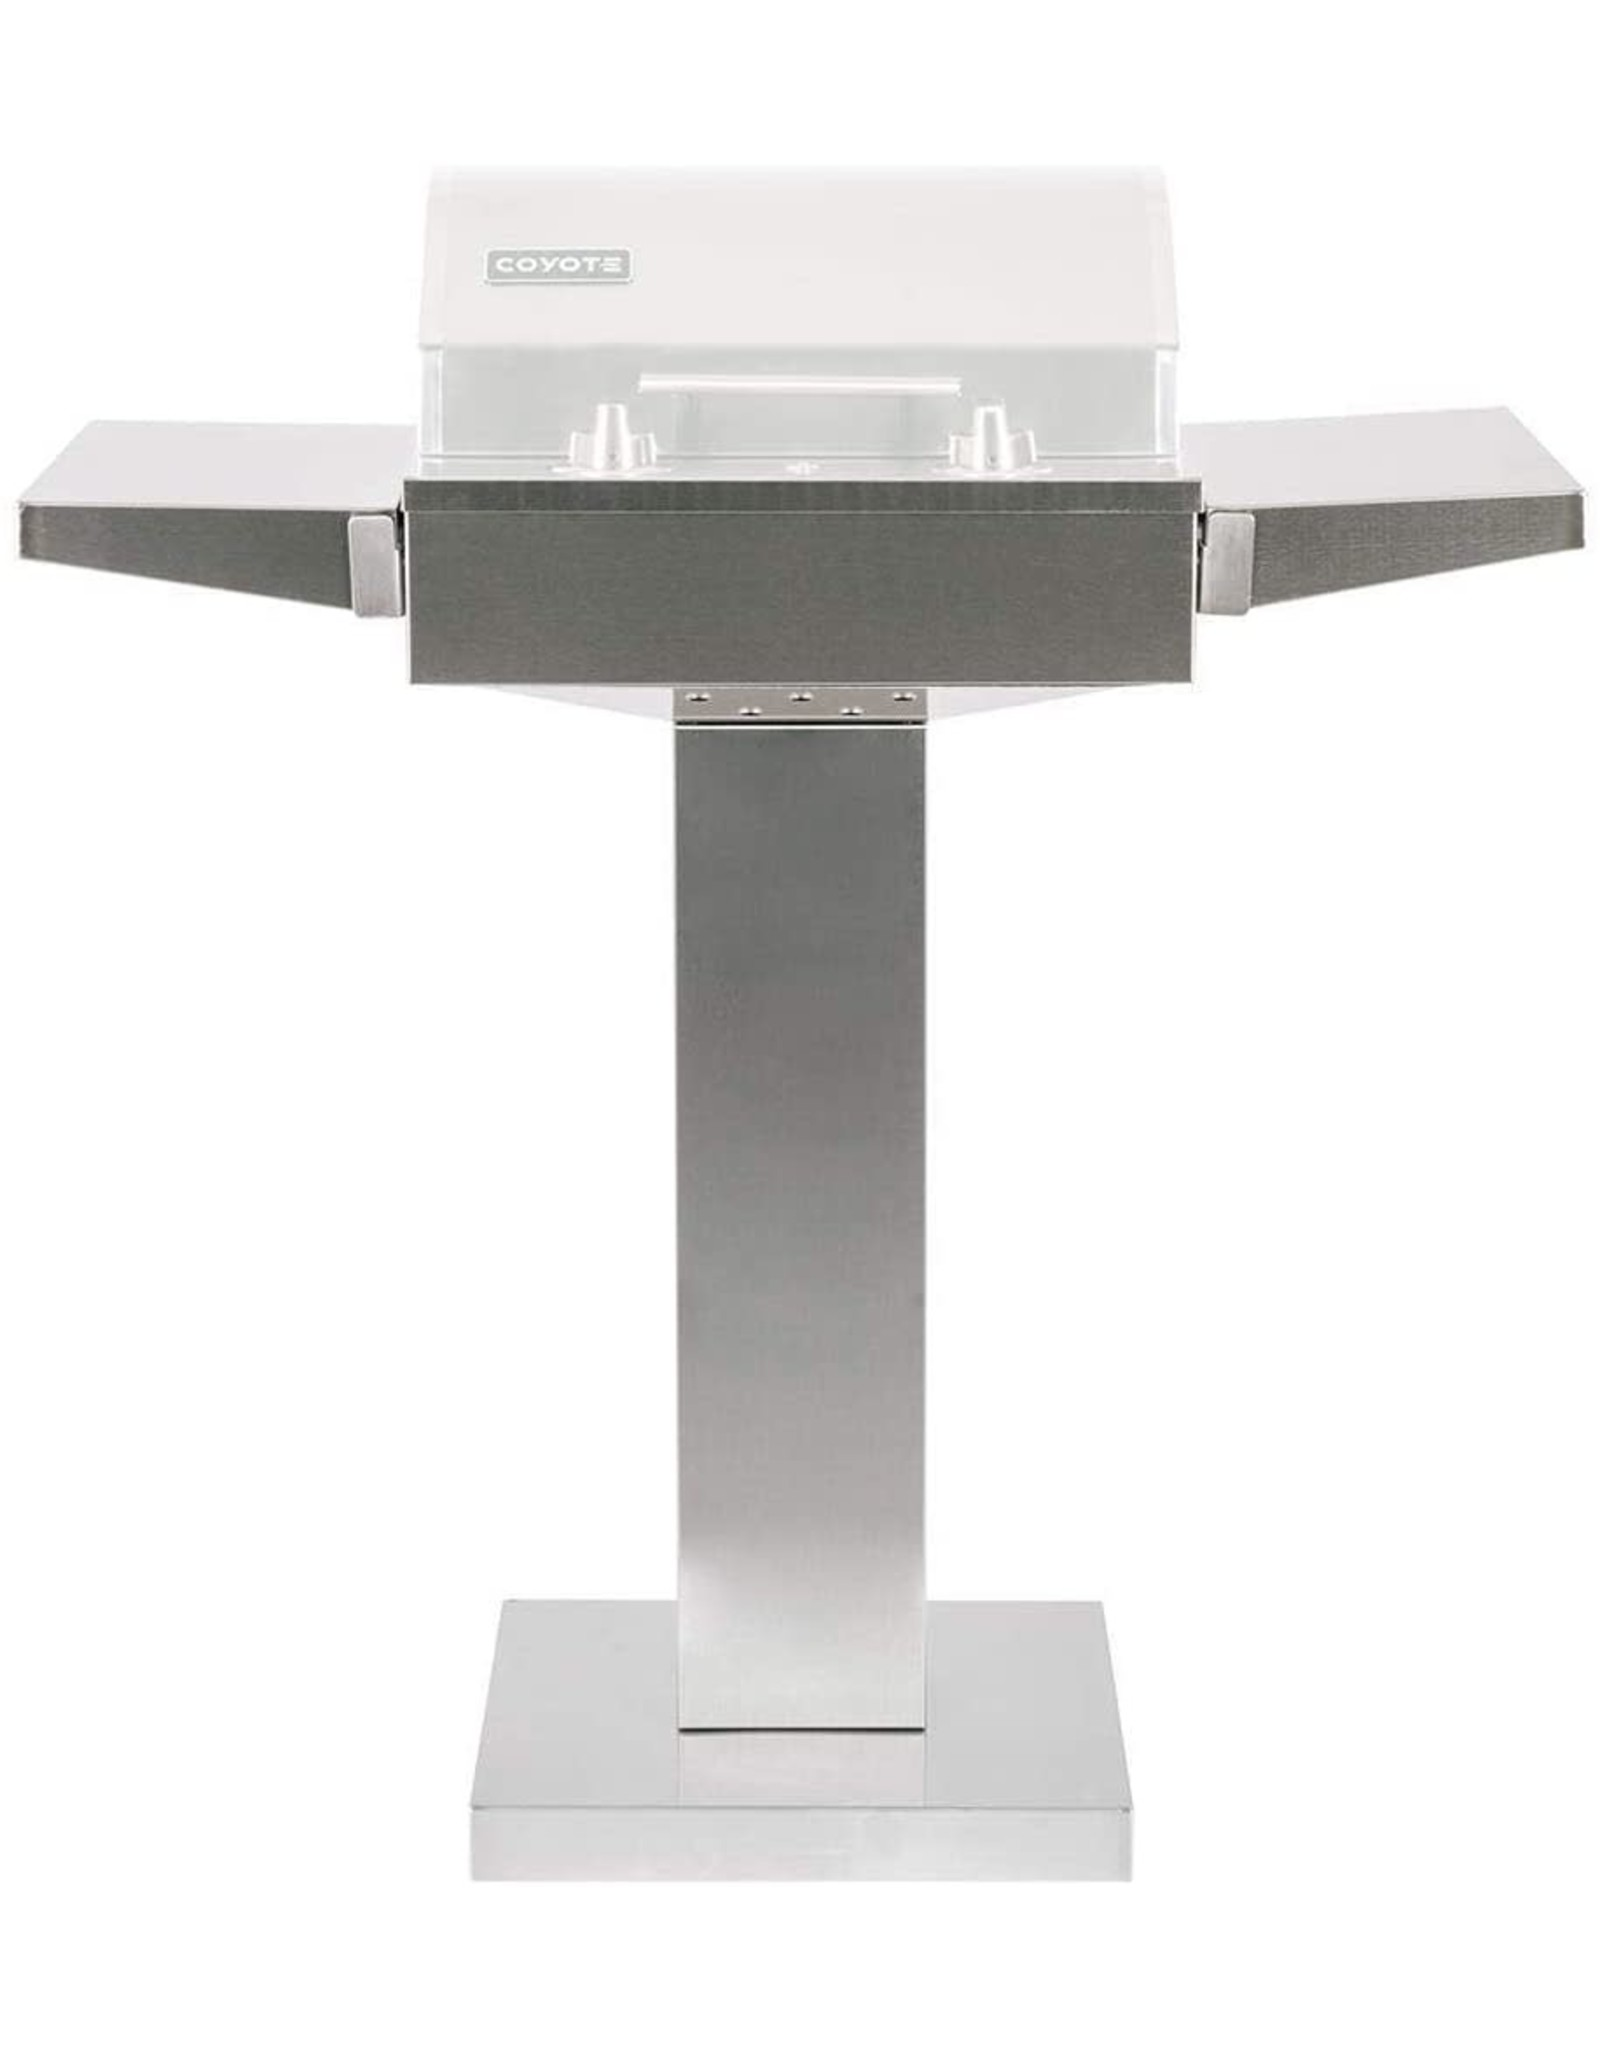 COYOTE Coyote Pedestal Cart for Electric Grill